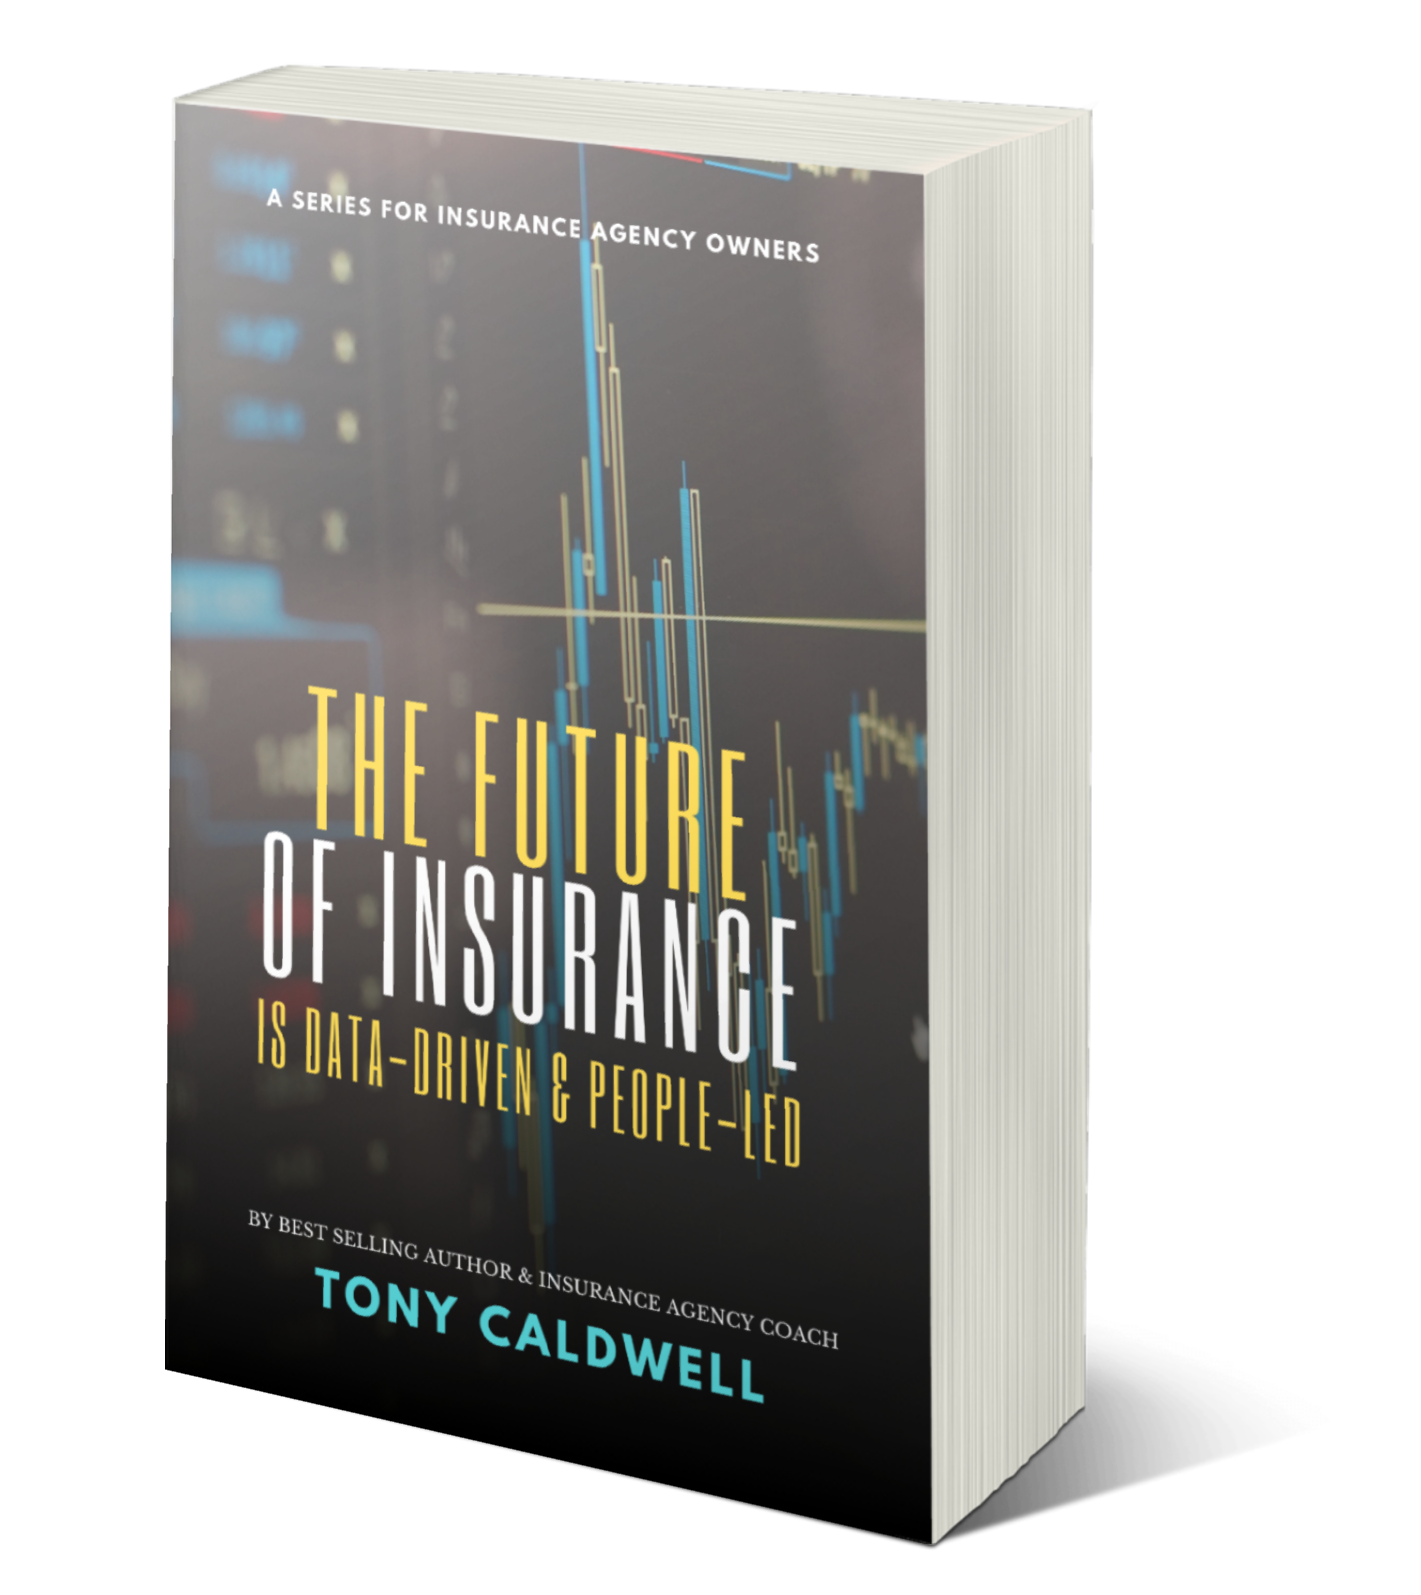 The Future of Insurance is Data-Driven & People-Led